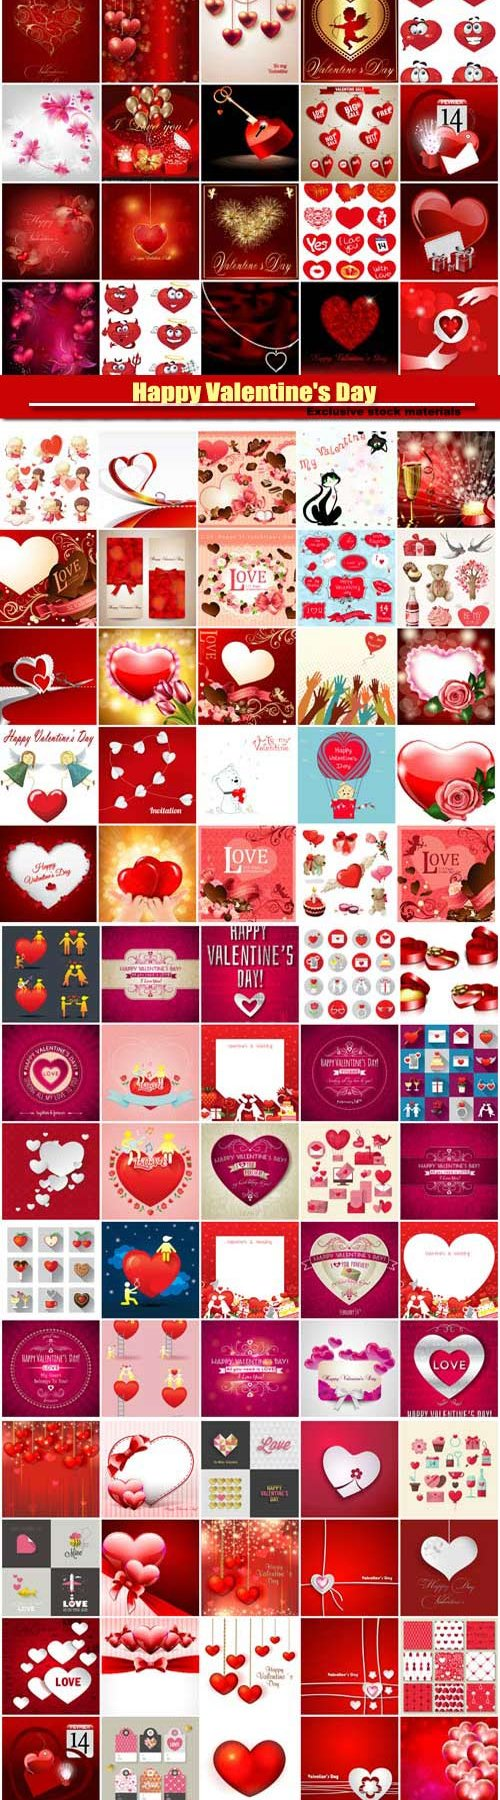 Big collection of vector festive Valentine's Day